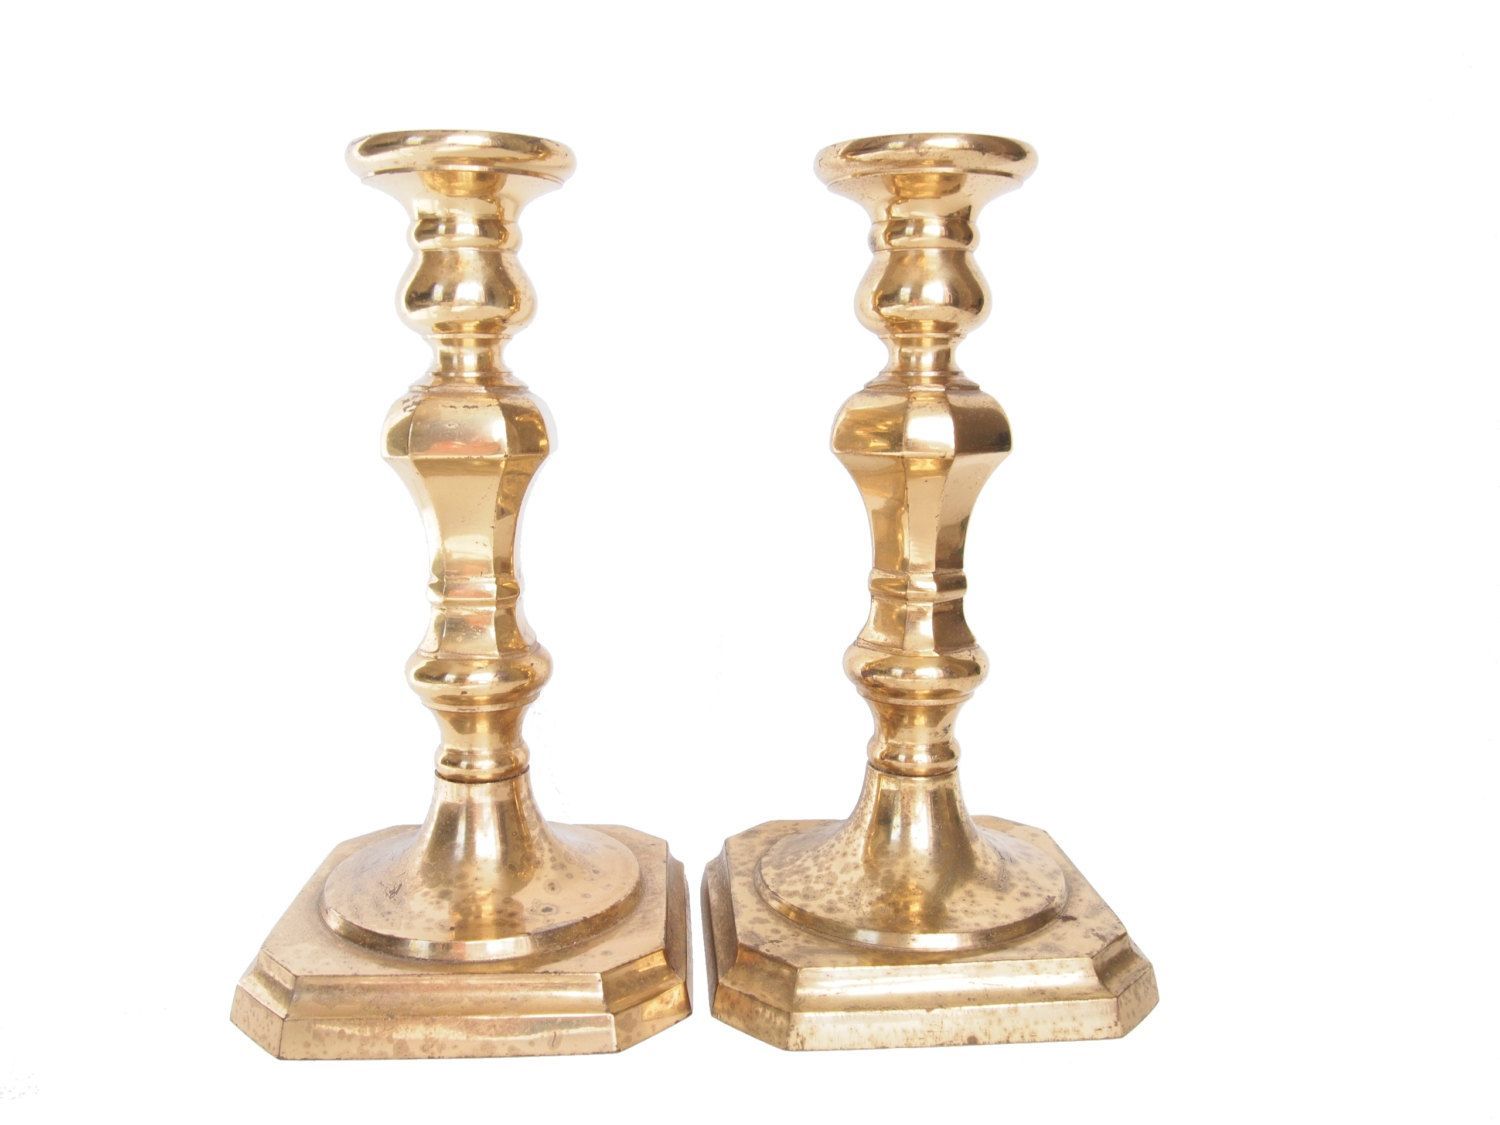 Vintage brass candlestick holders mantle candle